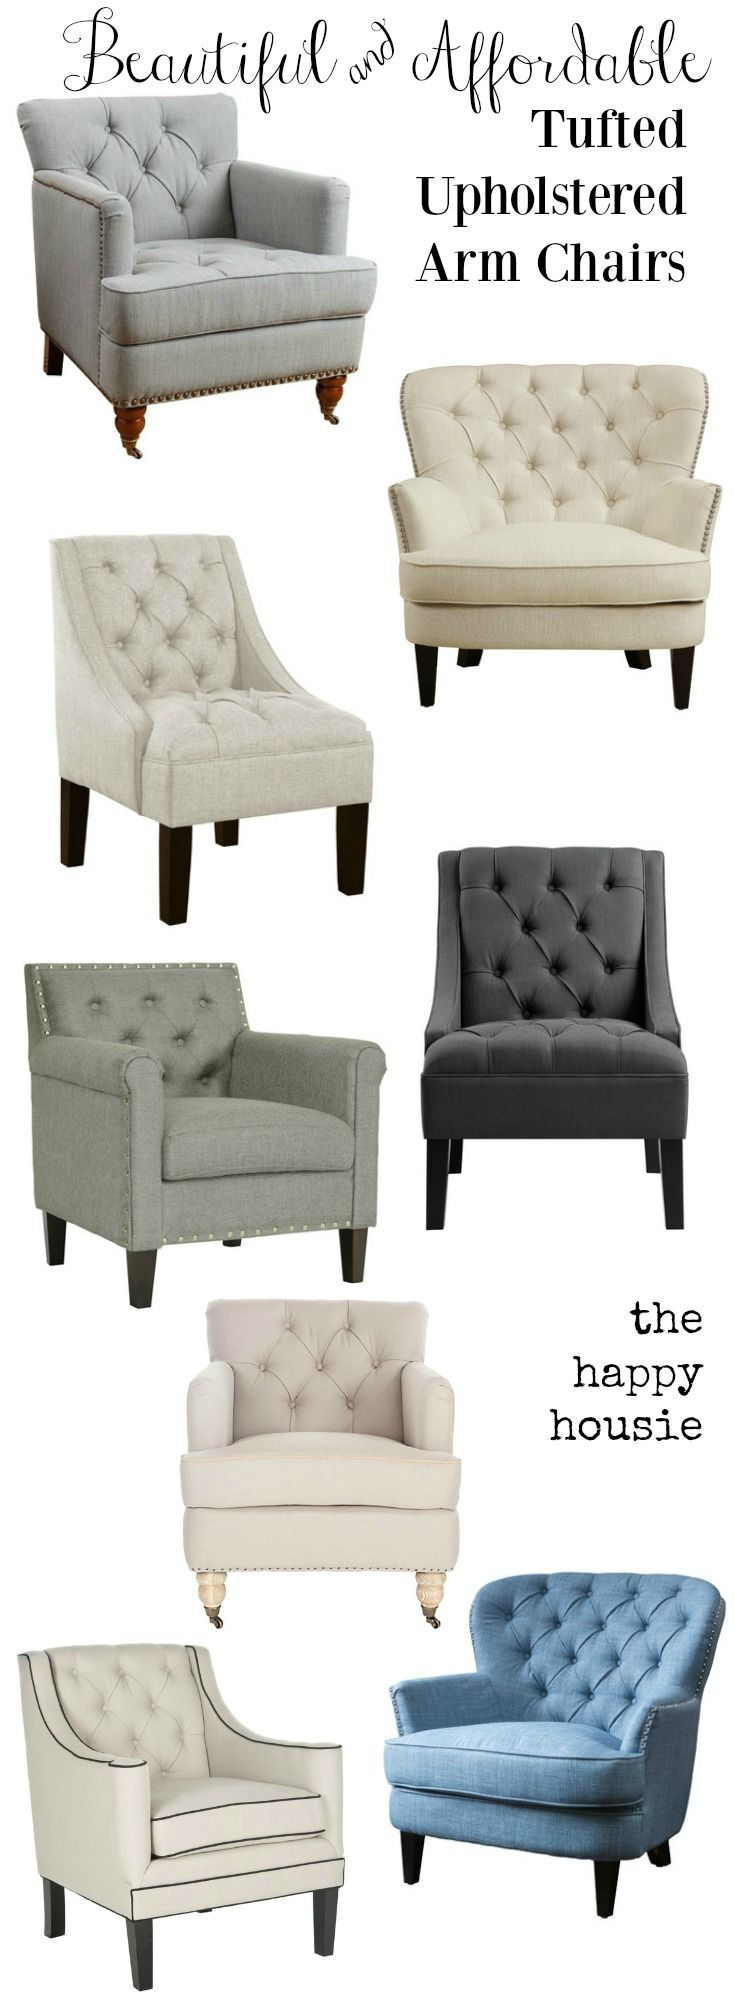 Friday\'s Finds: Beautiful & Affordable Tufted Upholstered Arm Chairs ...